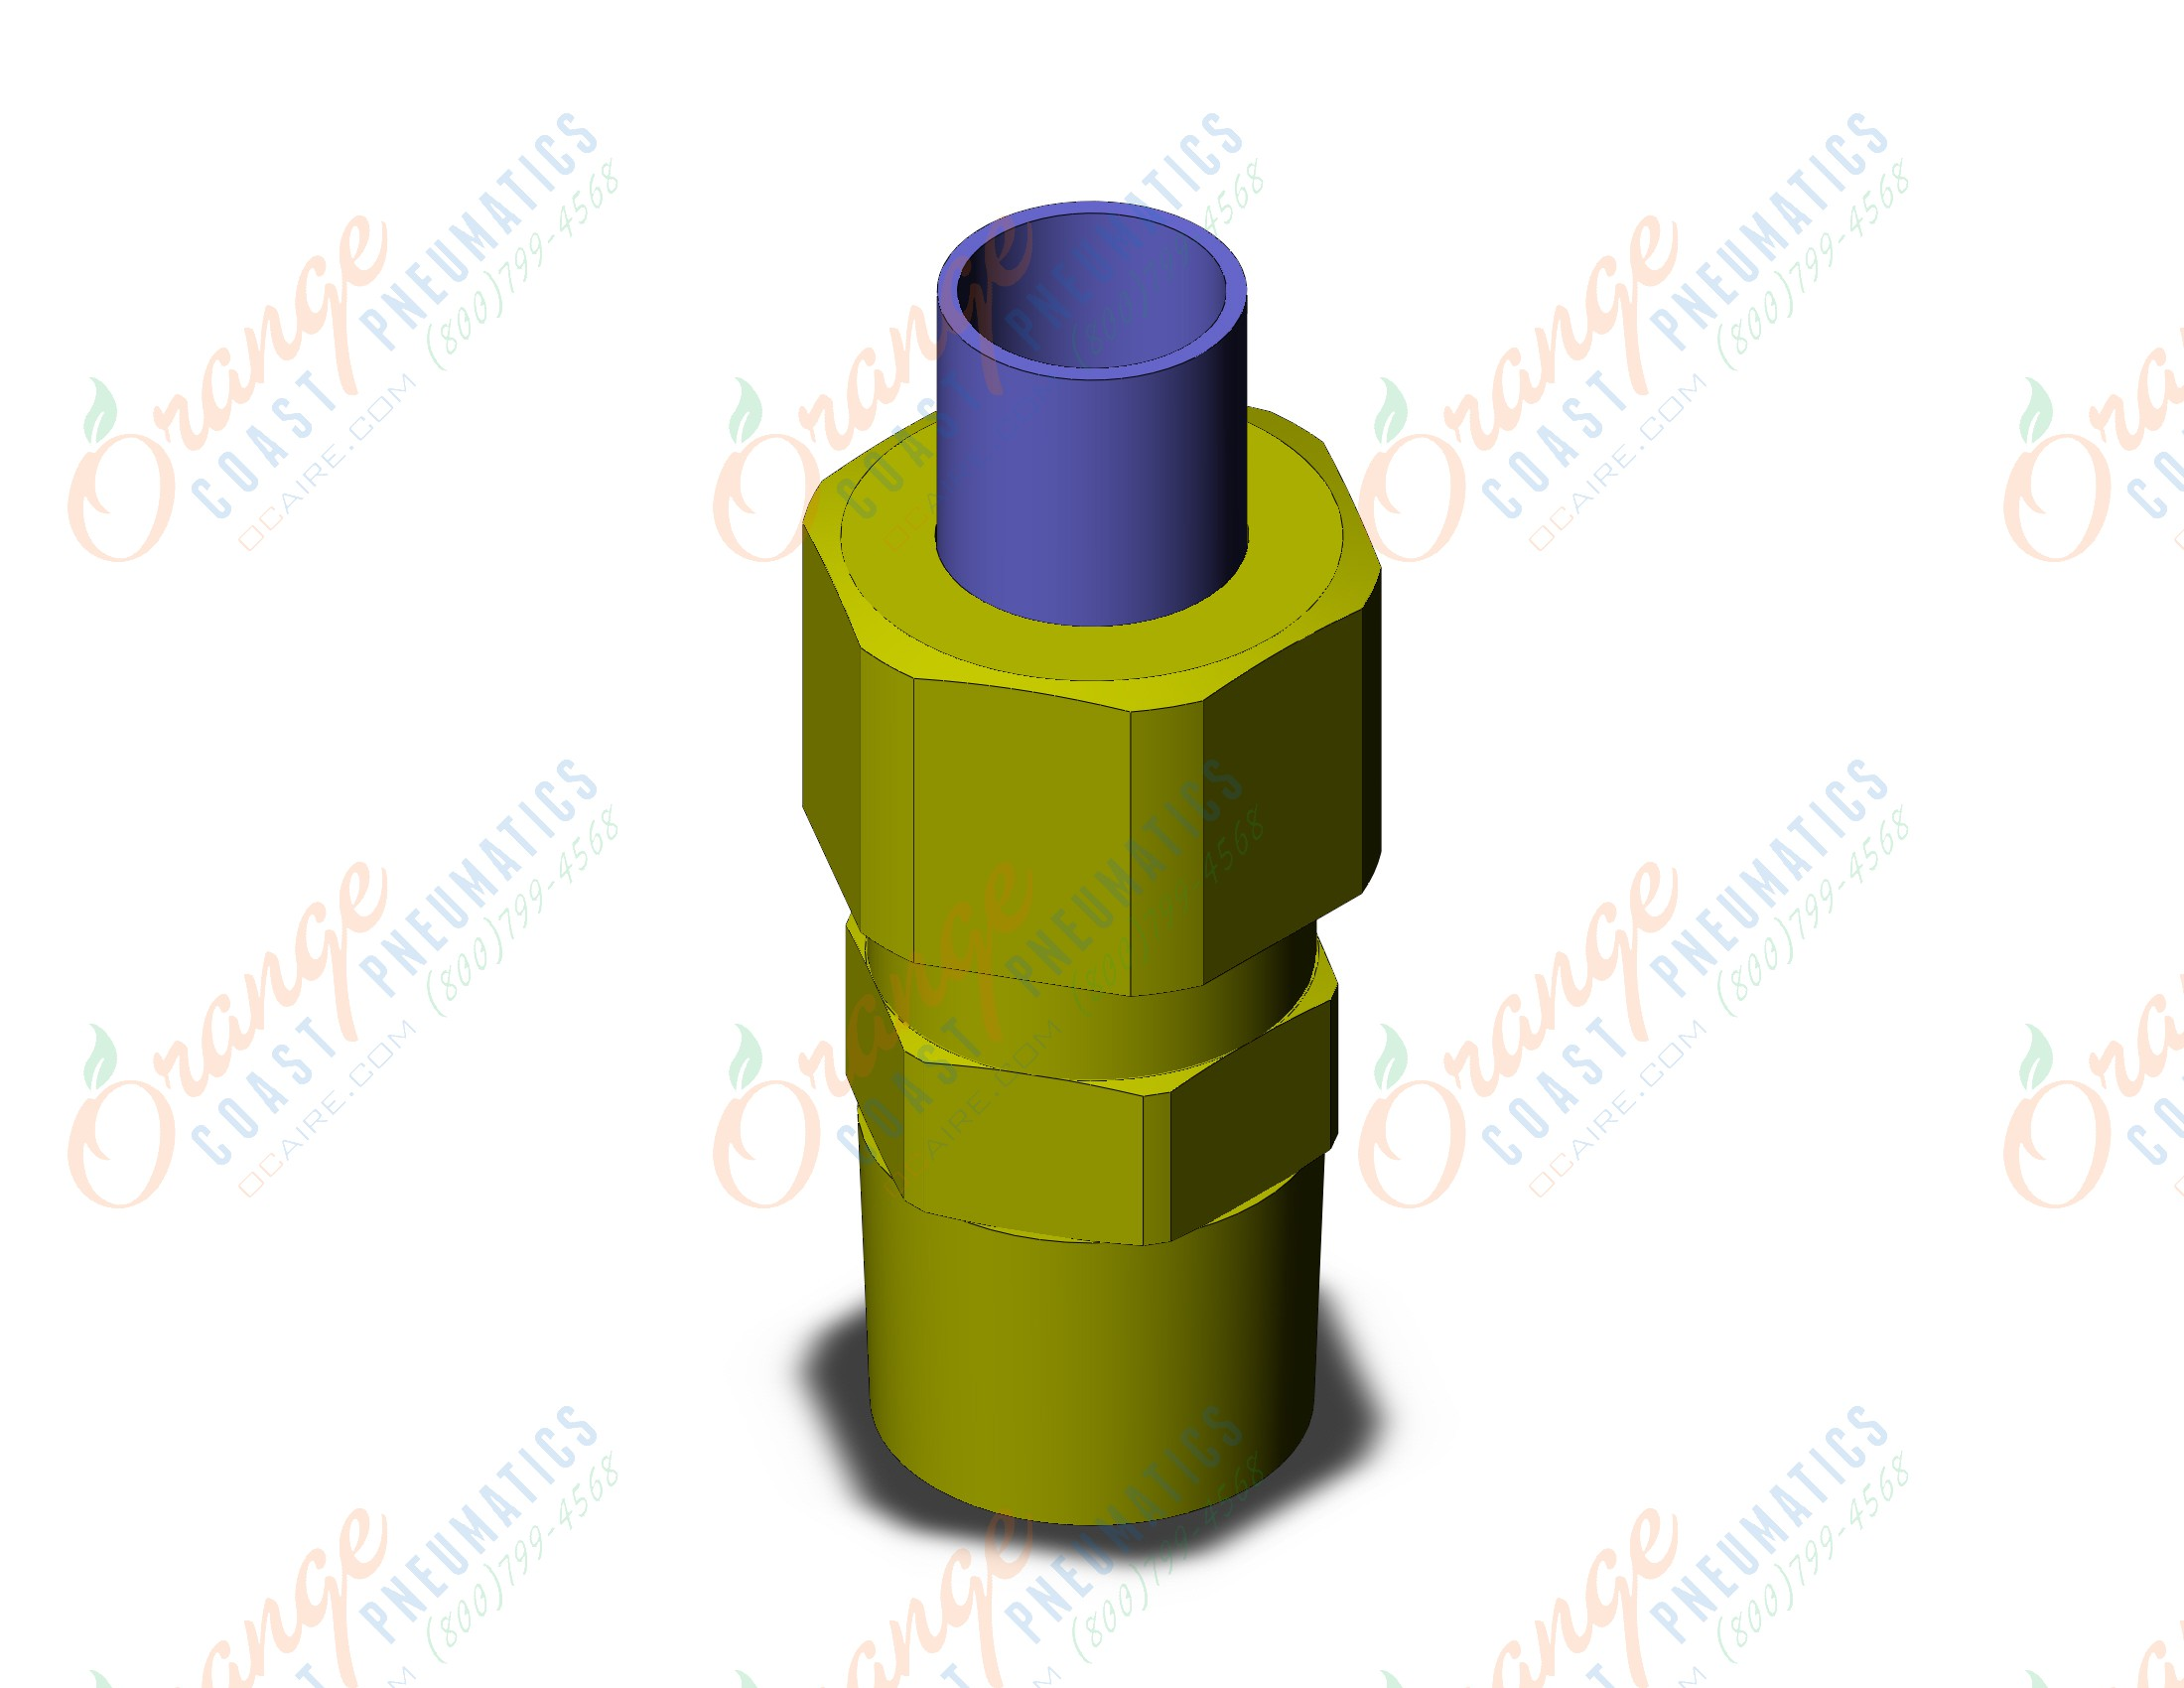 Fitting Stekker Smc Kfh06 01 Fitting Male Connector Kf Insert Fittings Sold In Packages Of 10 Price Is Per Piece